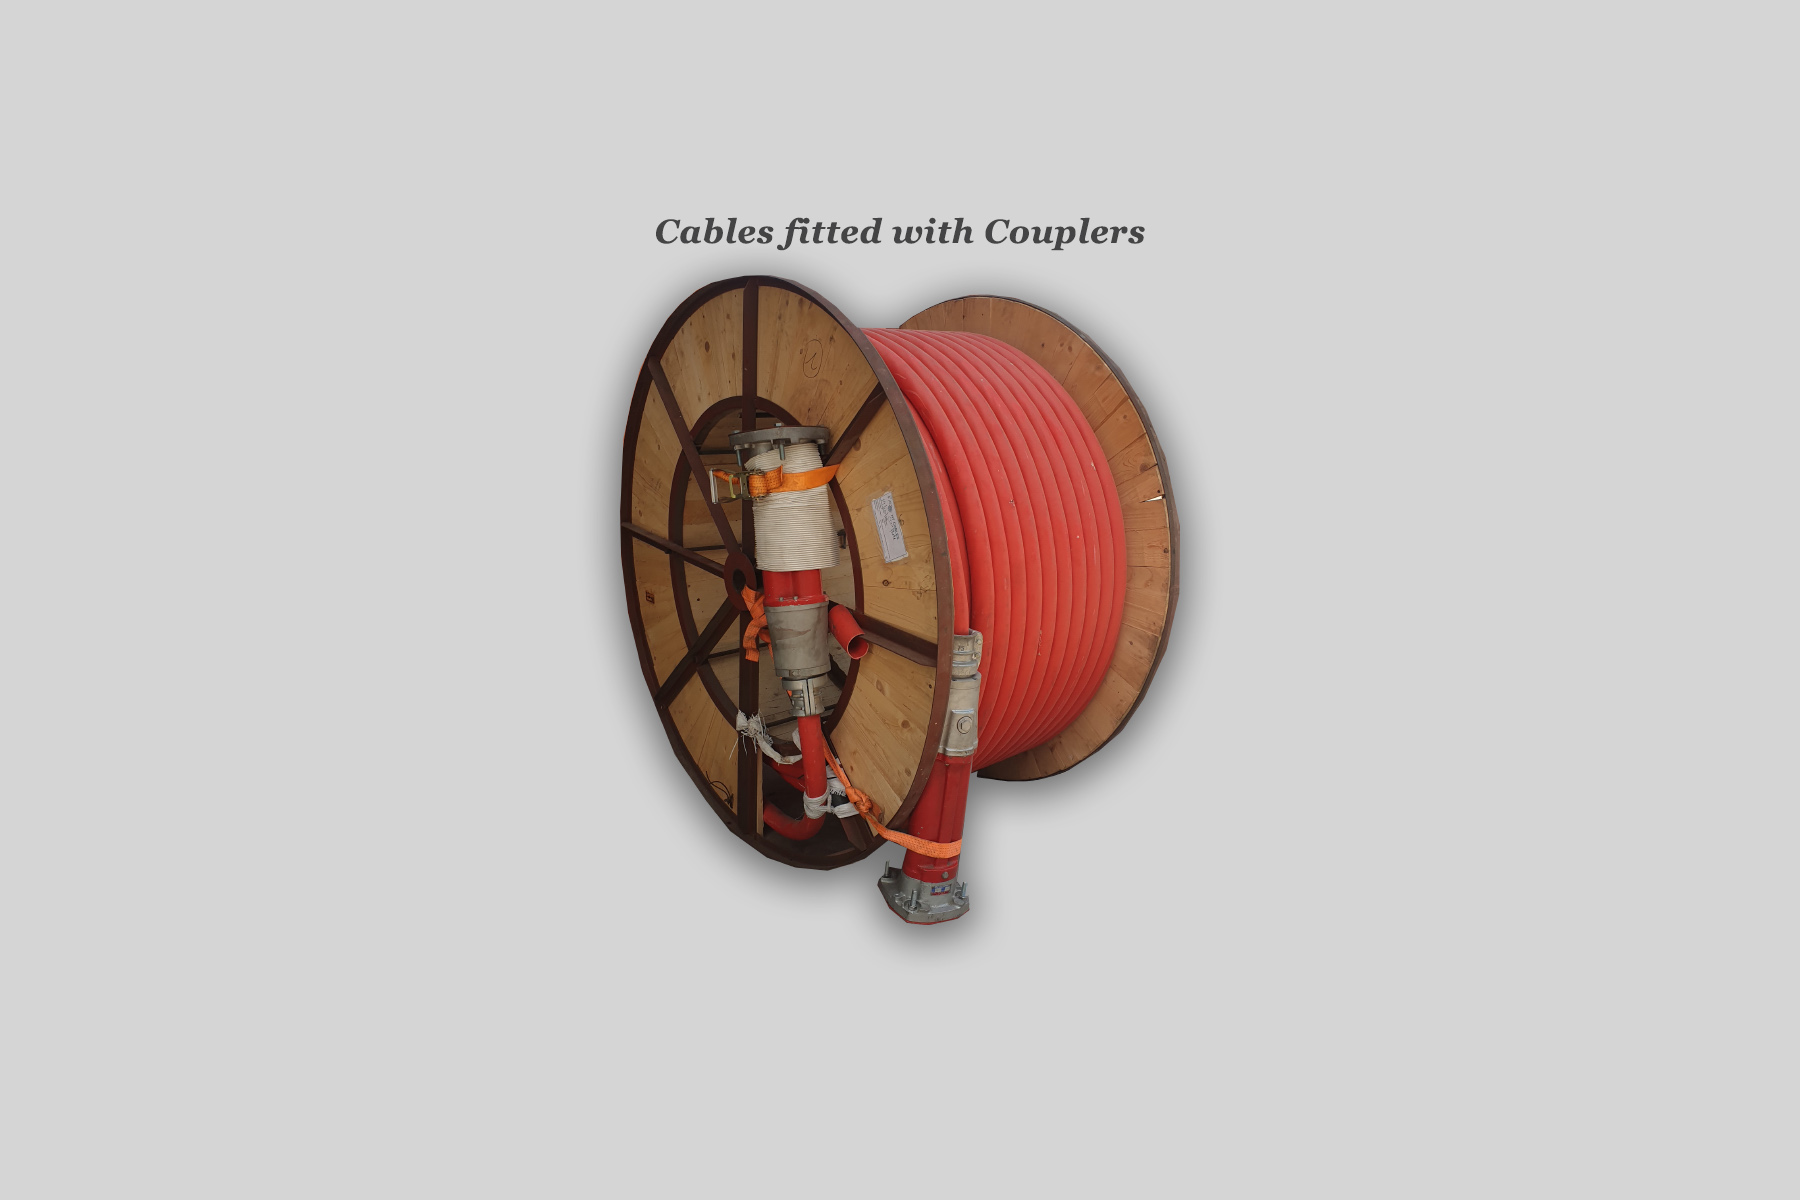 Cables fitted with couplers